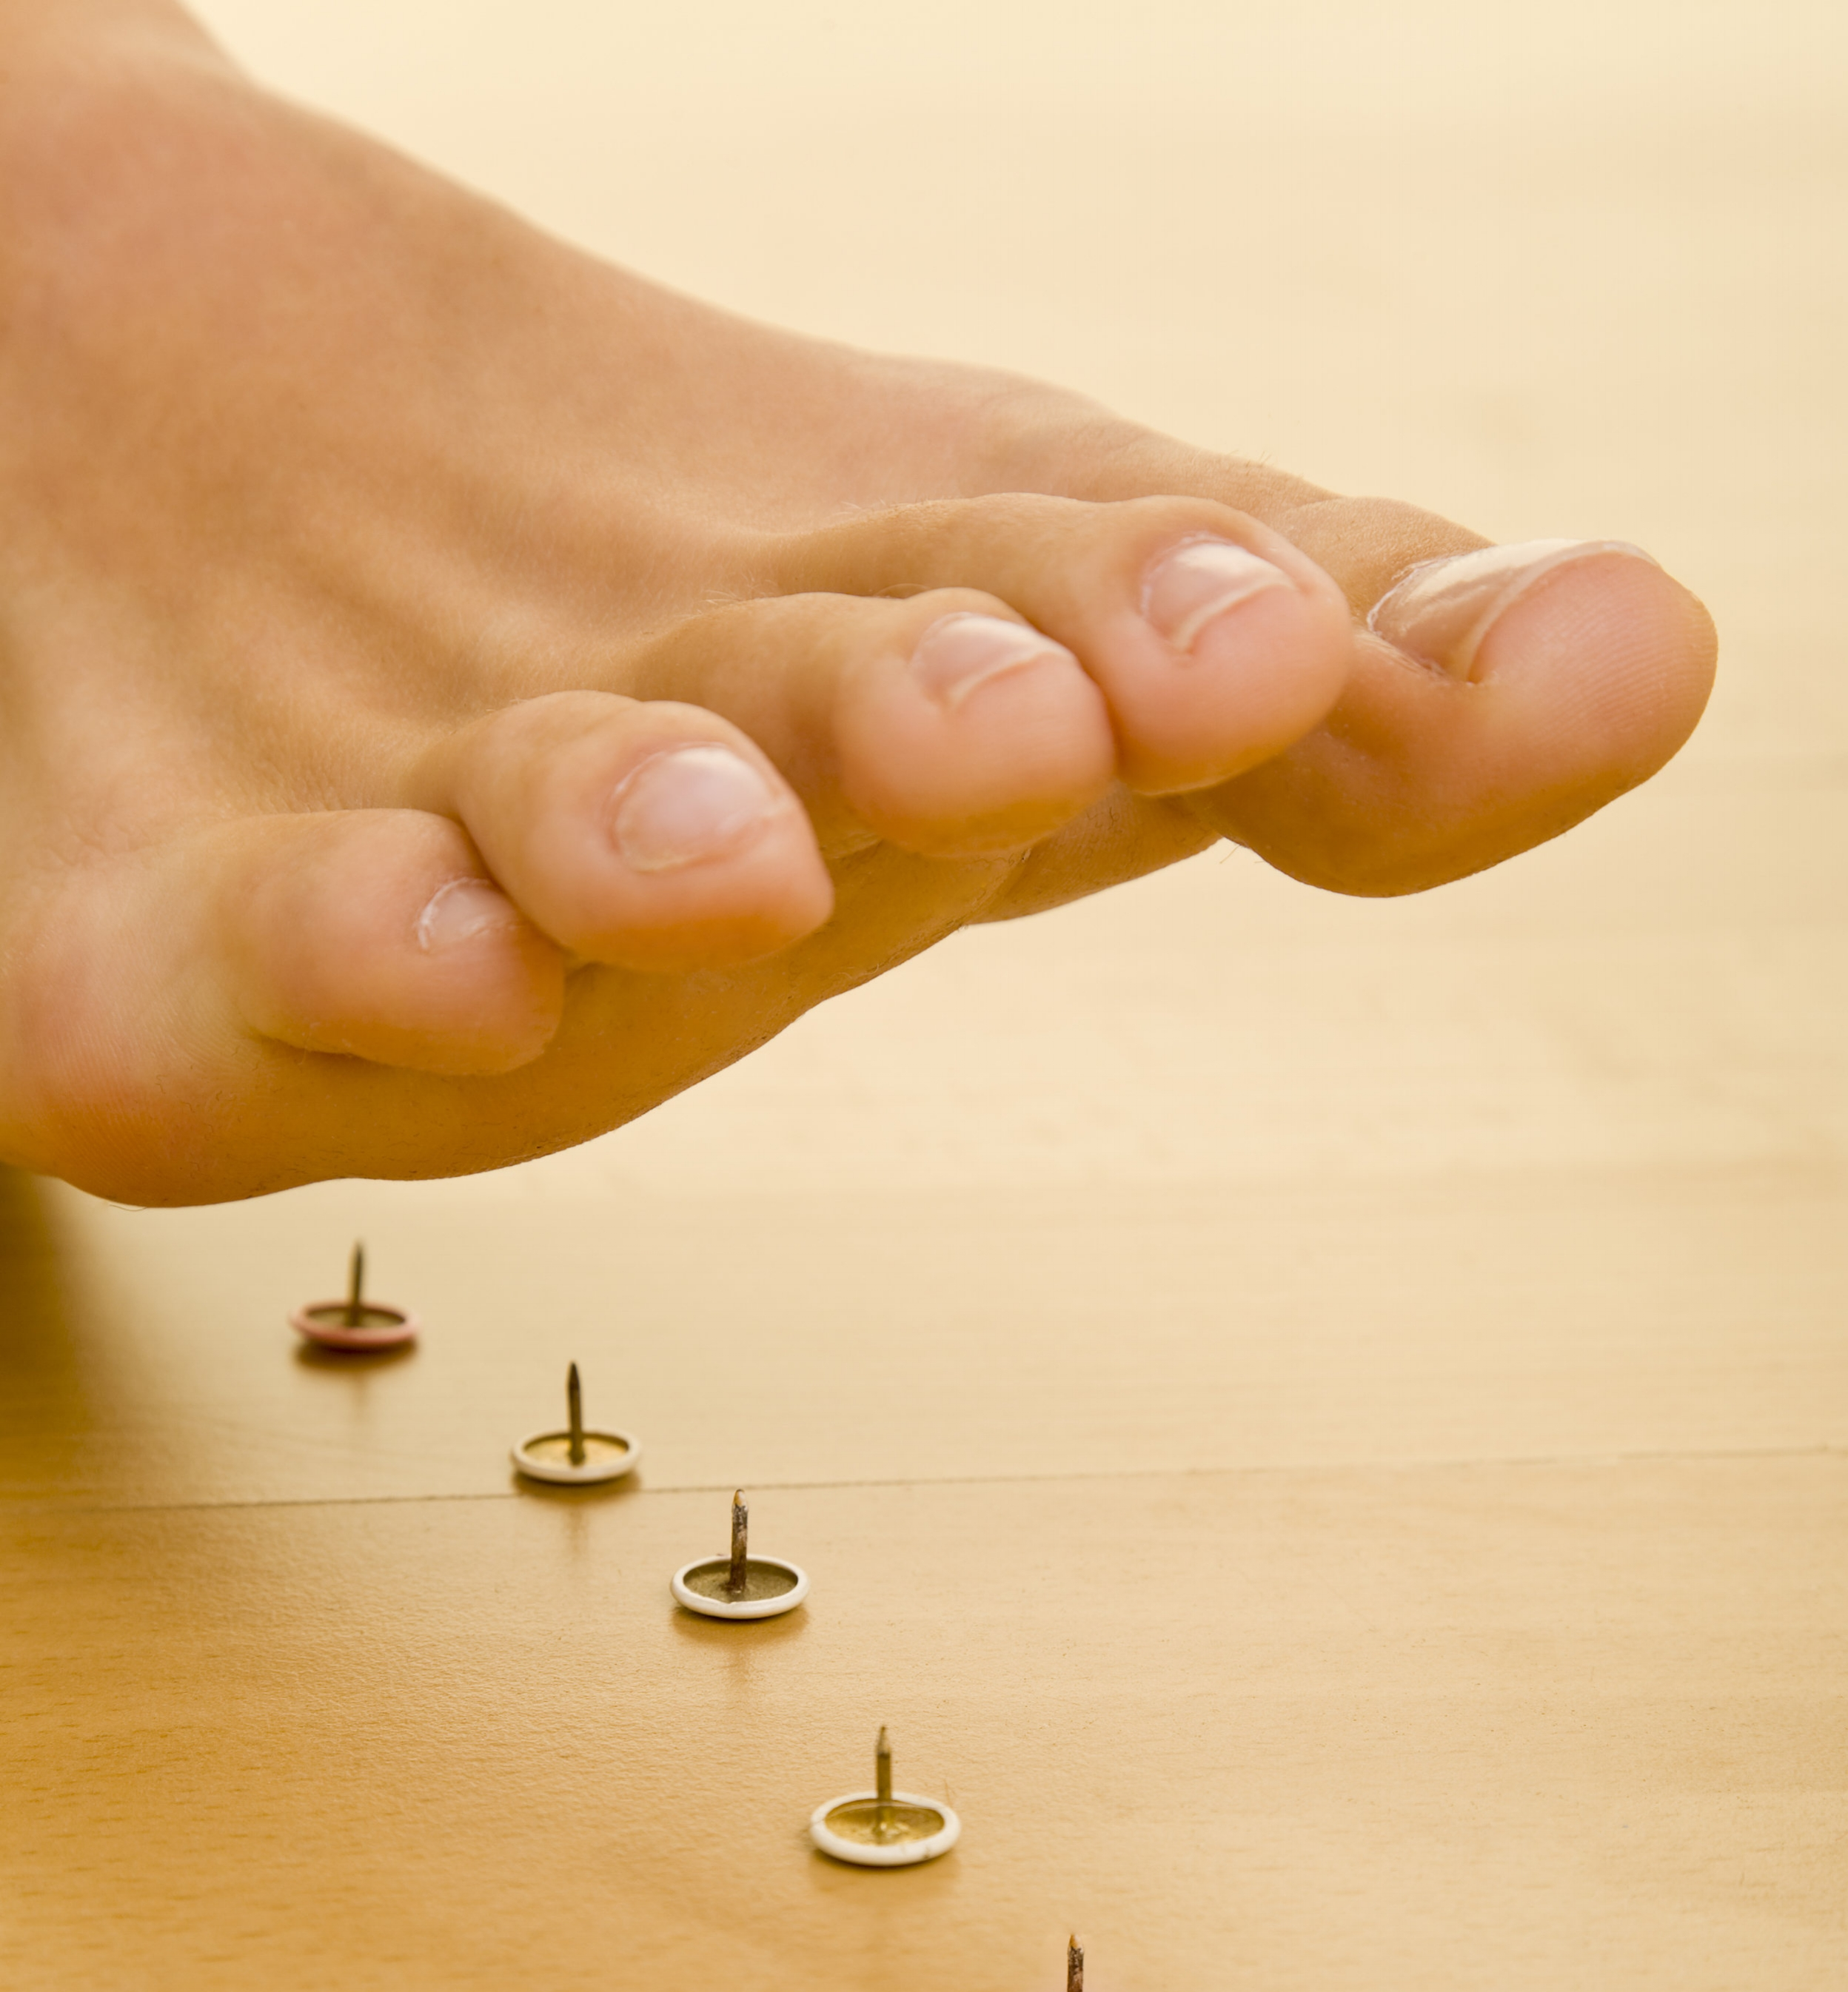 neuropathy specialist glen burnie, md